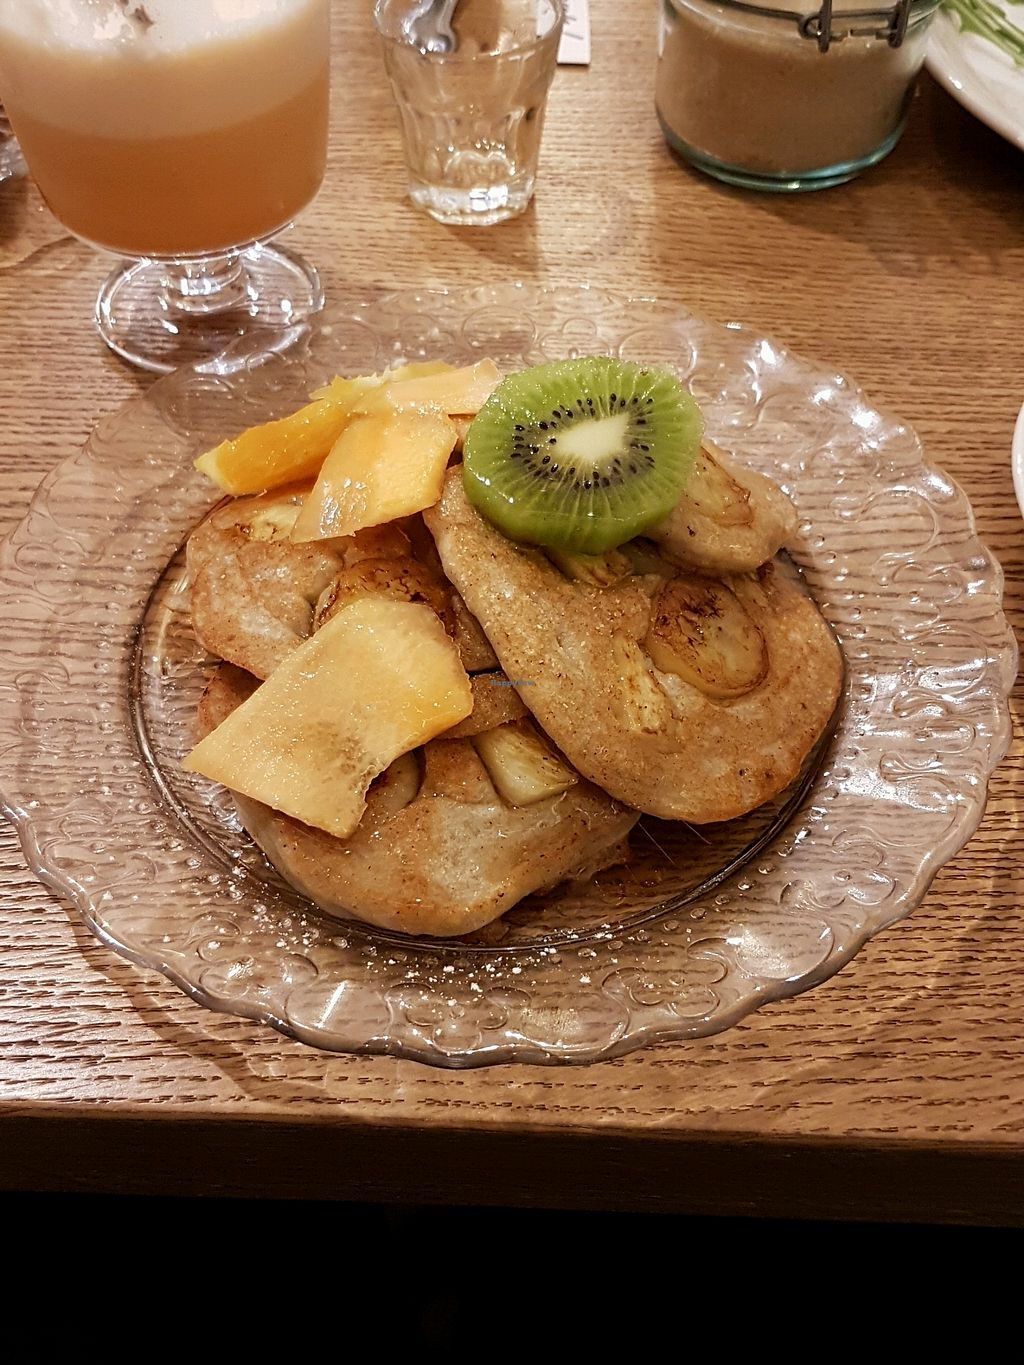 "Photo of Mo-Ja Cafe  by <a href=""/members/profile/PerrySwift"">PerrySwift</a> <br/>Delicious, gluten free pancakes <br/> April 17, 2018  - <a href='/contact/abuse/image/75826/387280'>Report</a>"